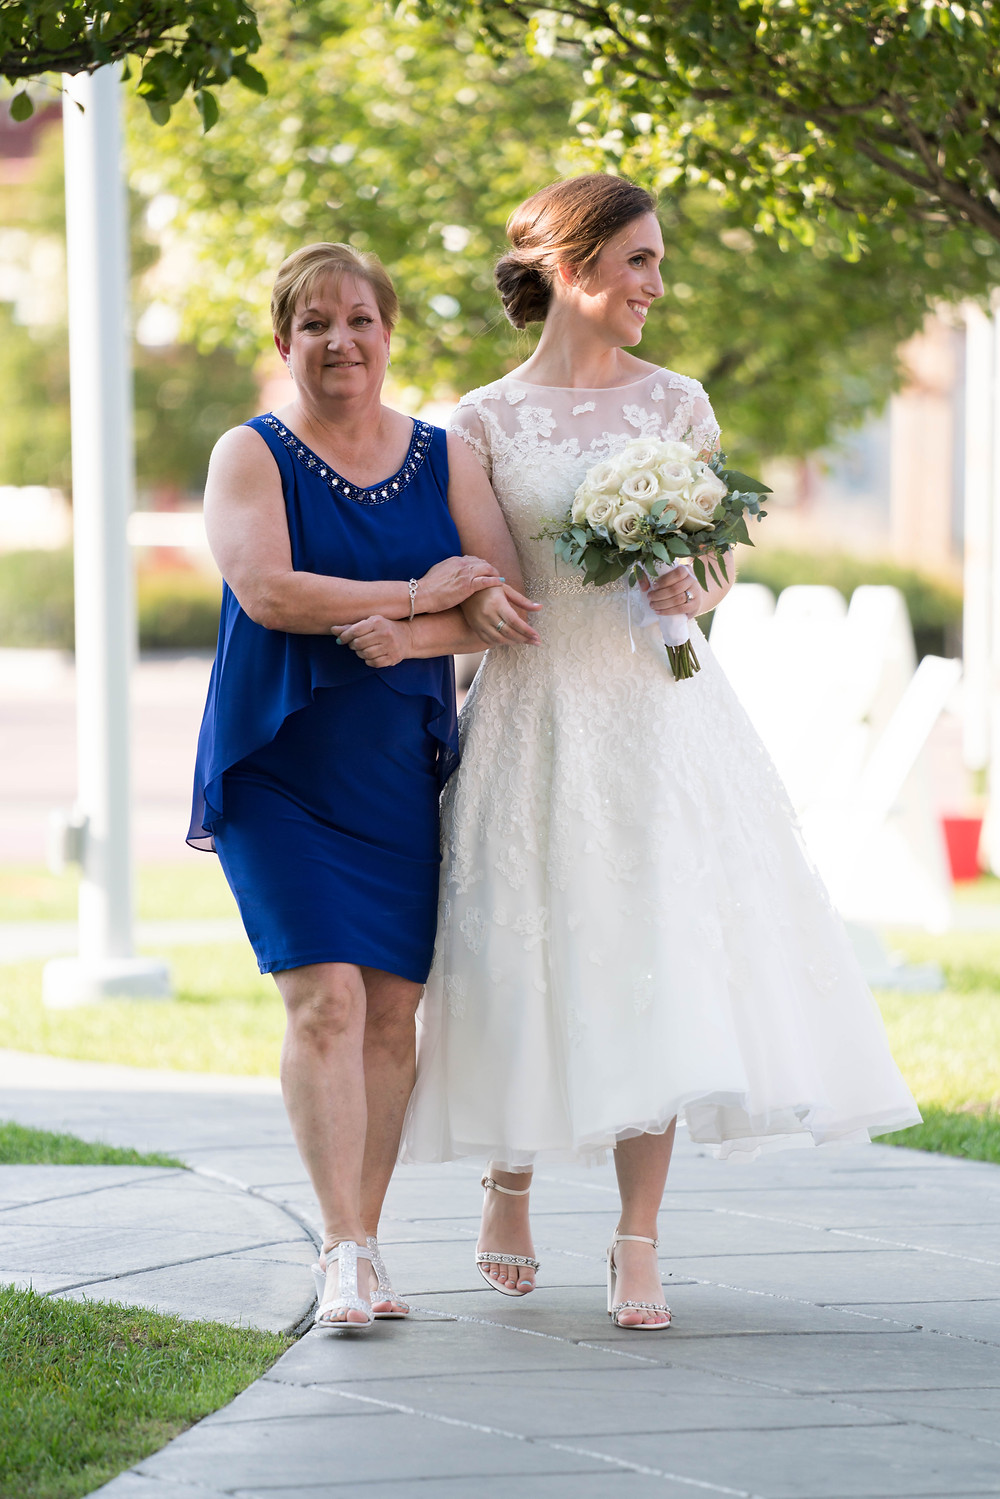 mom walking bride down aisle Larkinville Buffalo NY Larkin Wedding Ceremony Outdoor venue